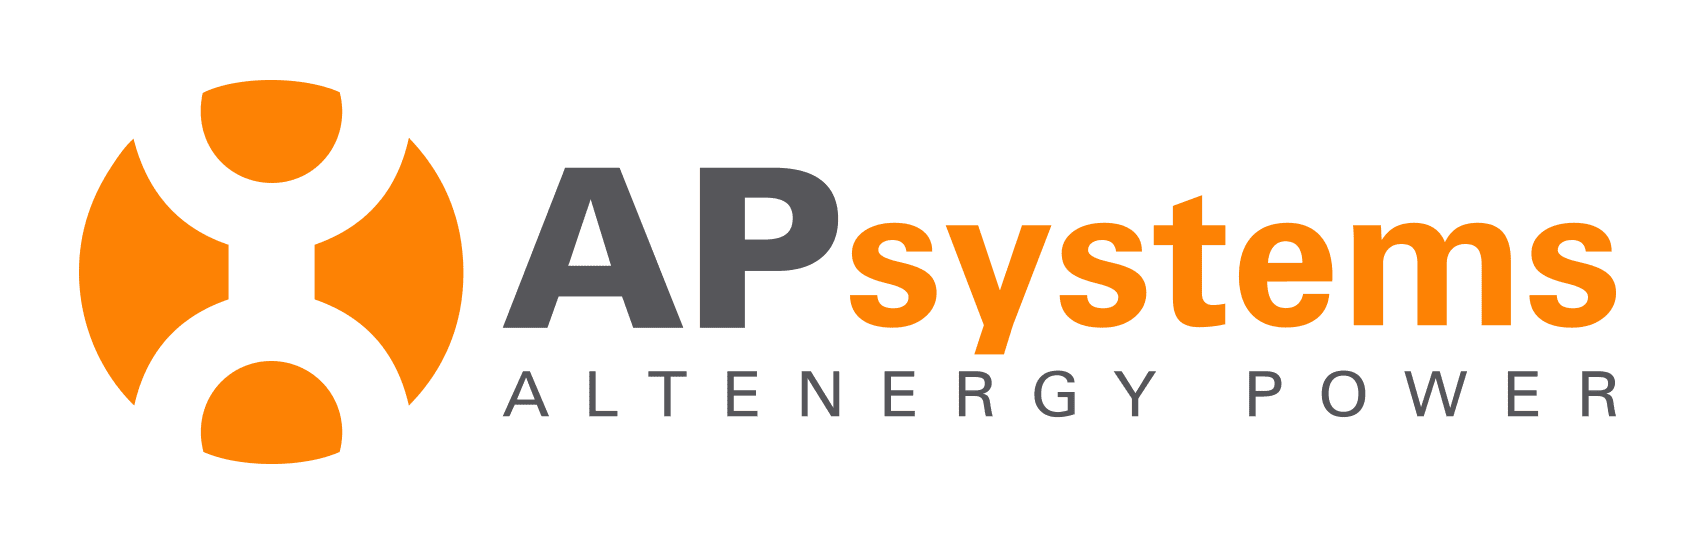 APsystems Latin America |  The global leader in multi-platform MLPE technology